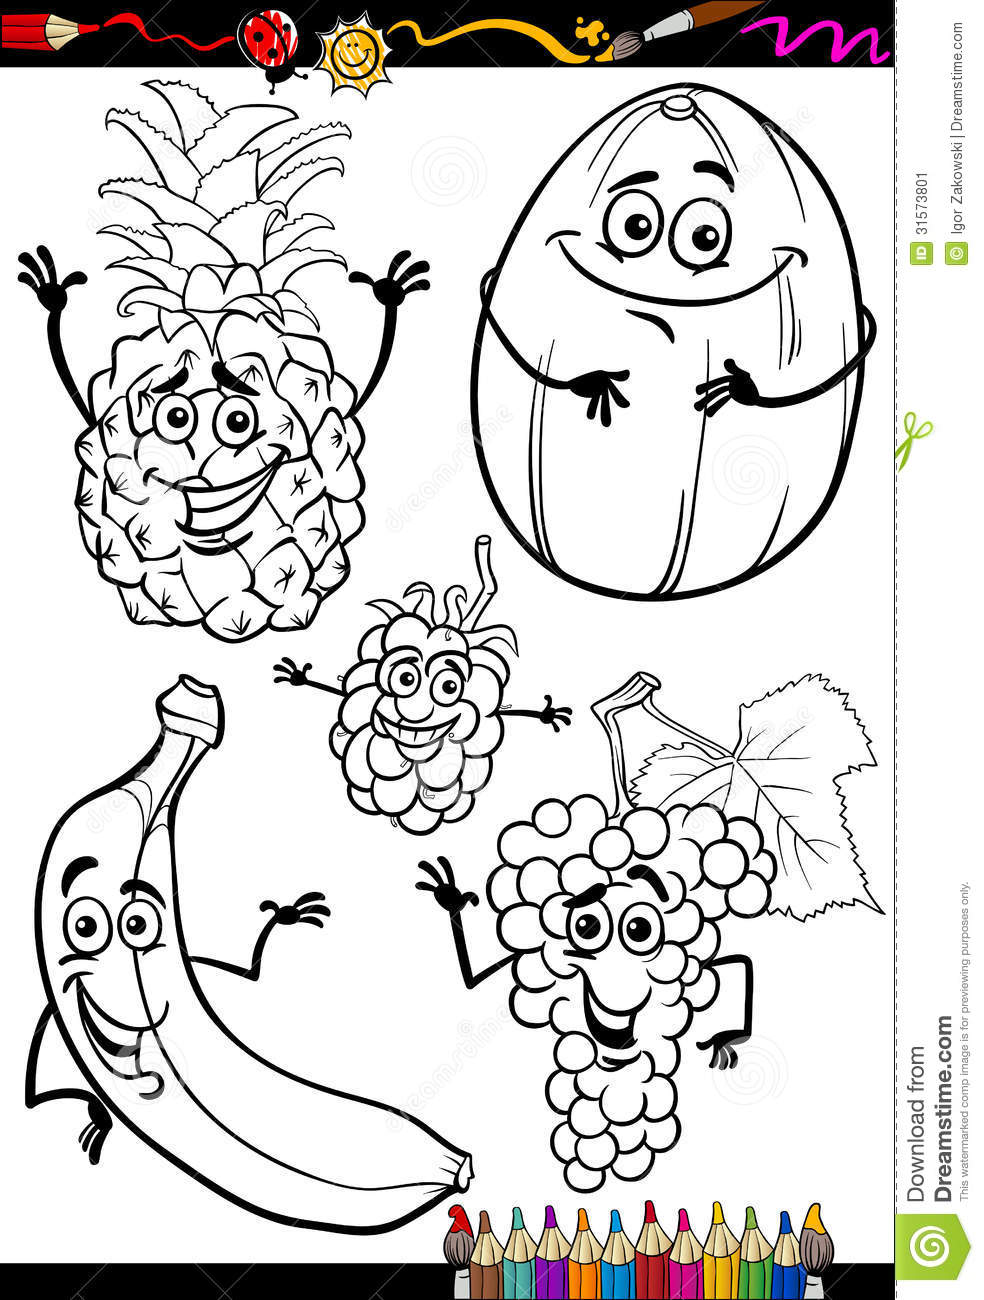 kids coloring pages nutrition foods - photo#50